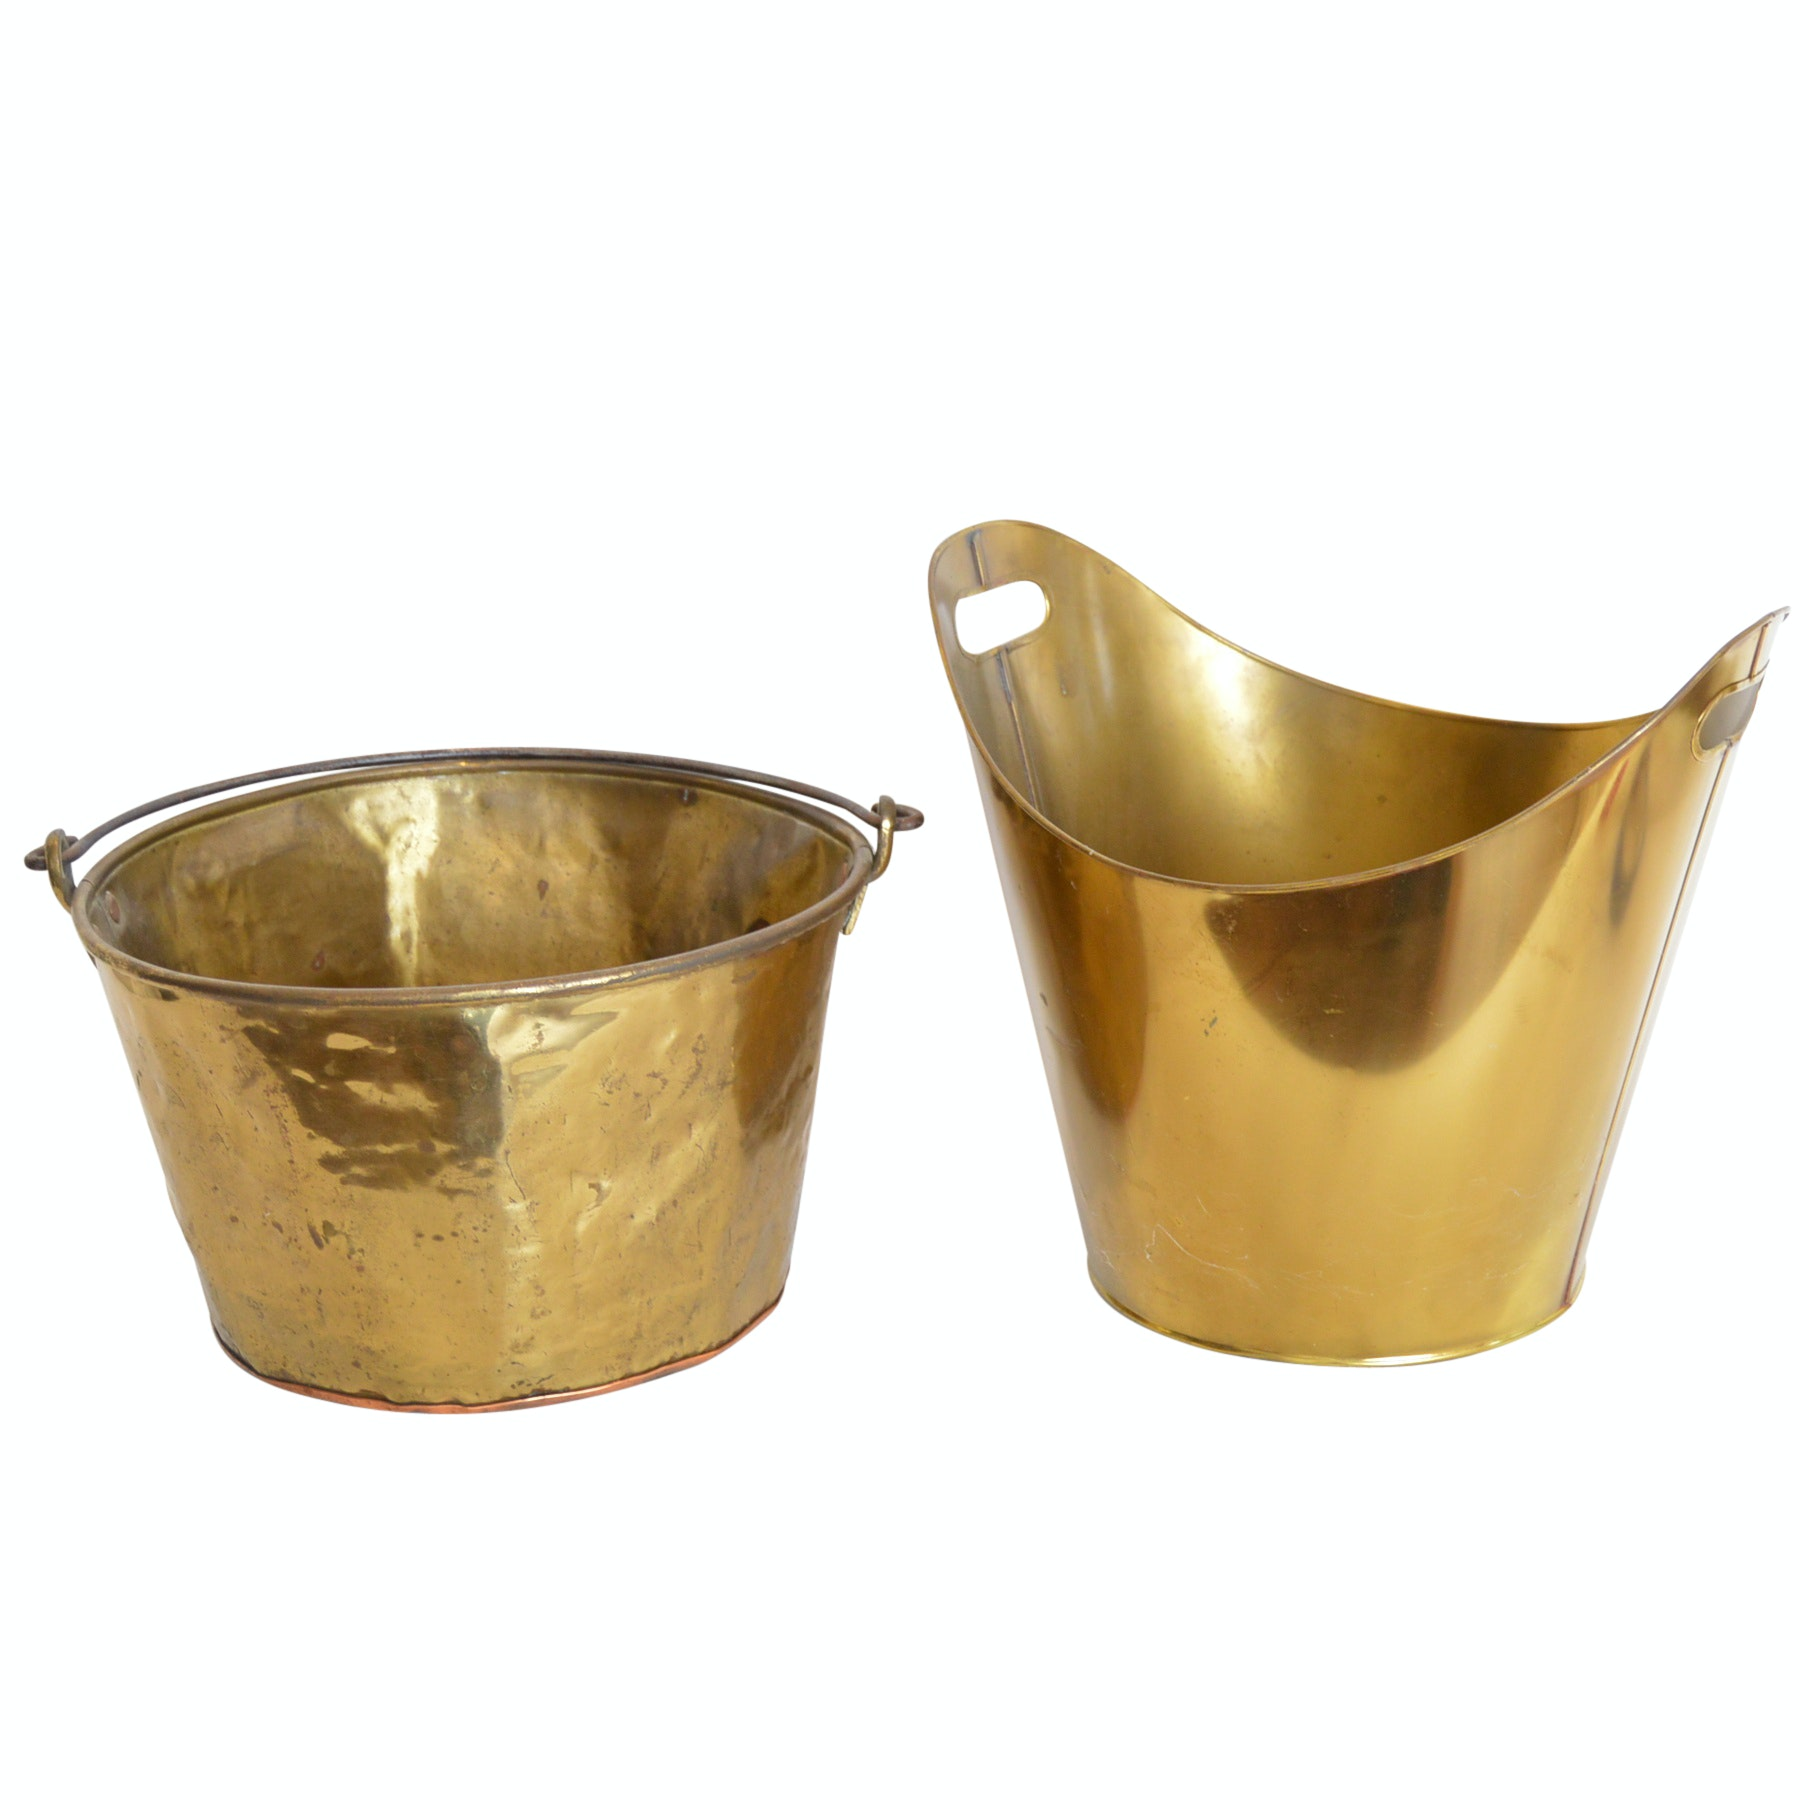 Brass Buckets with Vintage